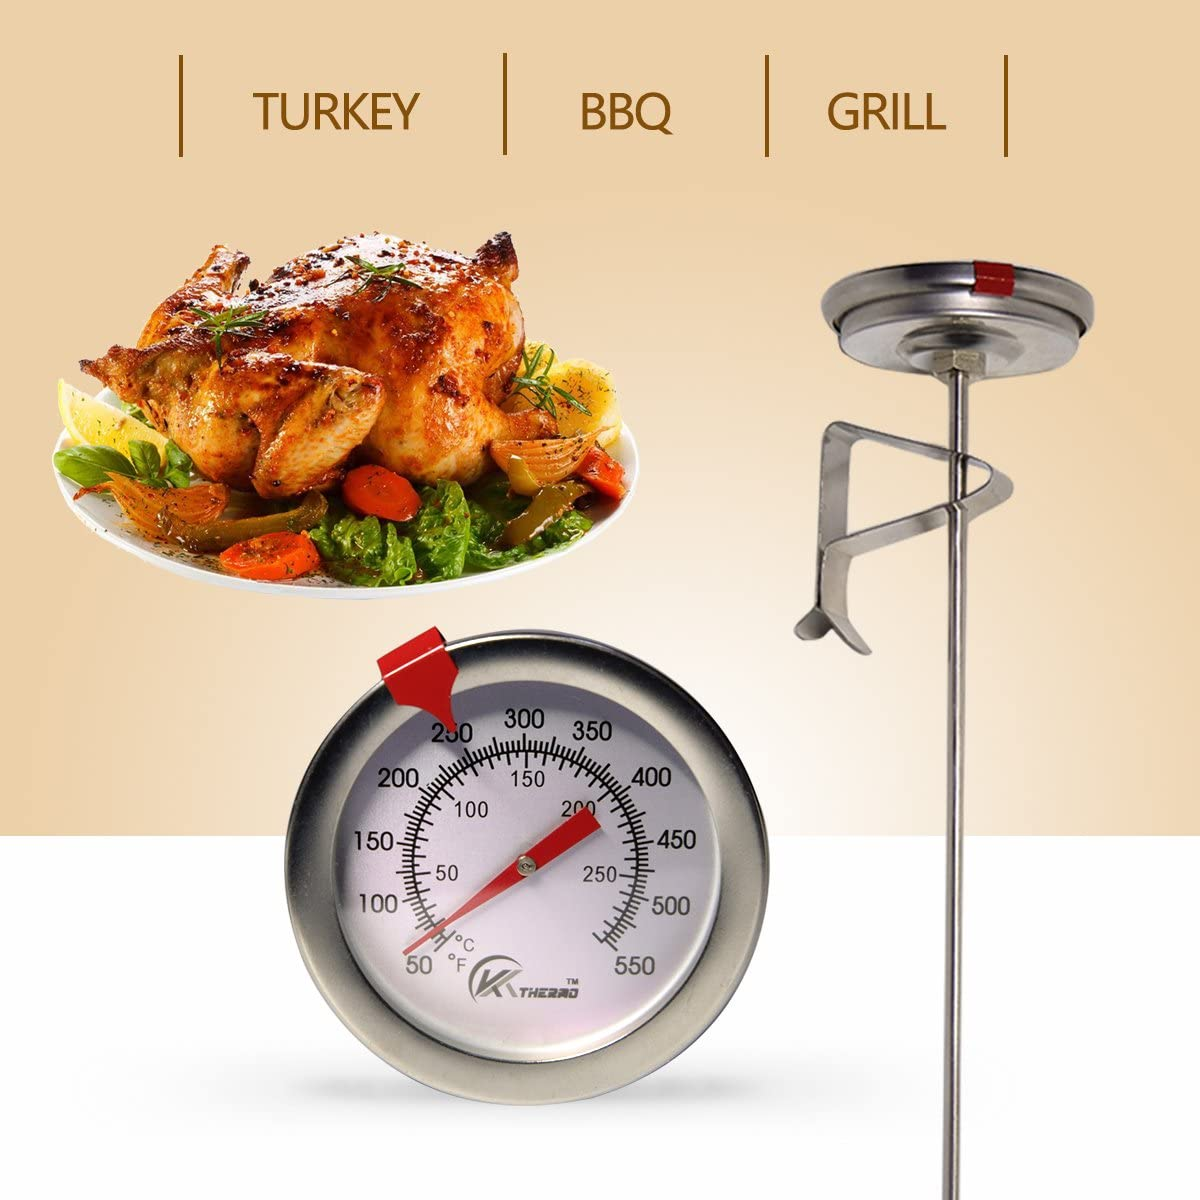 2. KT THERMO Deep Fry Thermometer